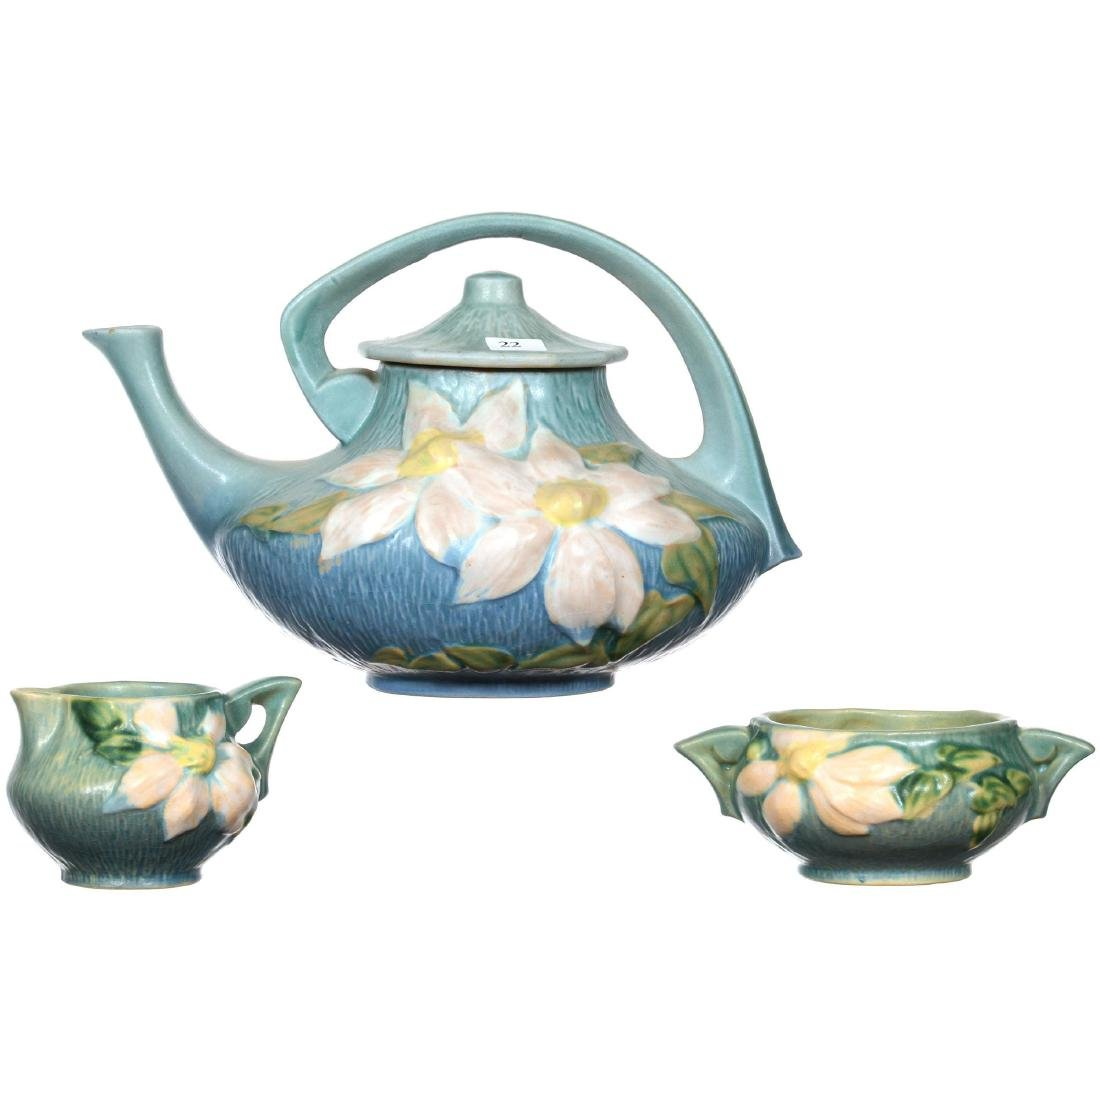 Three Piece Roseville Art Pottery Tea Set